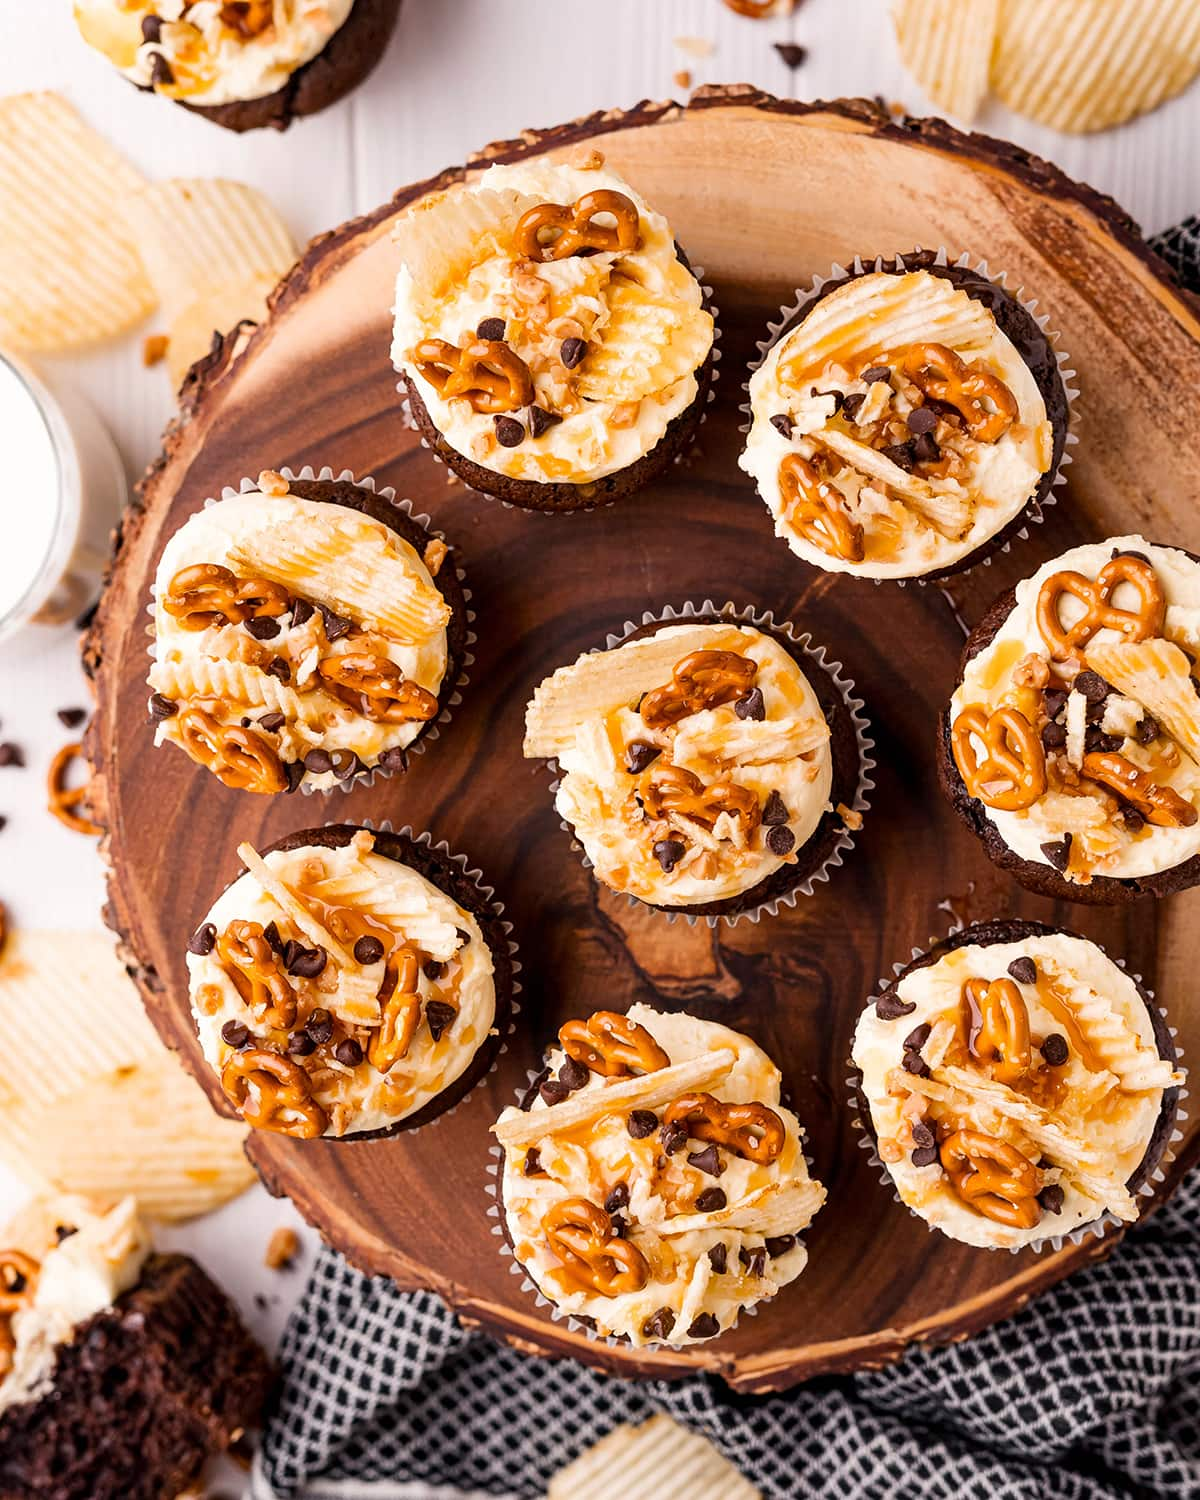 Chocolate cupcakes on a wooden stand topped with mini pretzels, ruffle chips, chocolate chips, and toffee pieces.